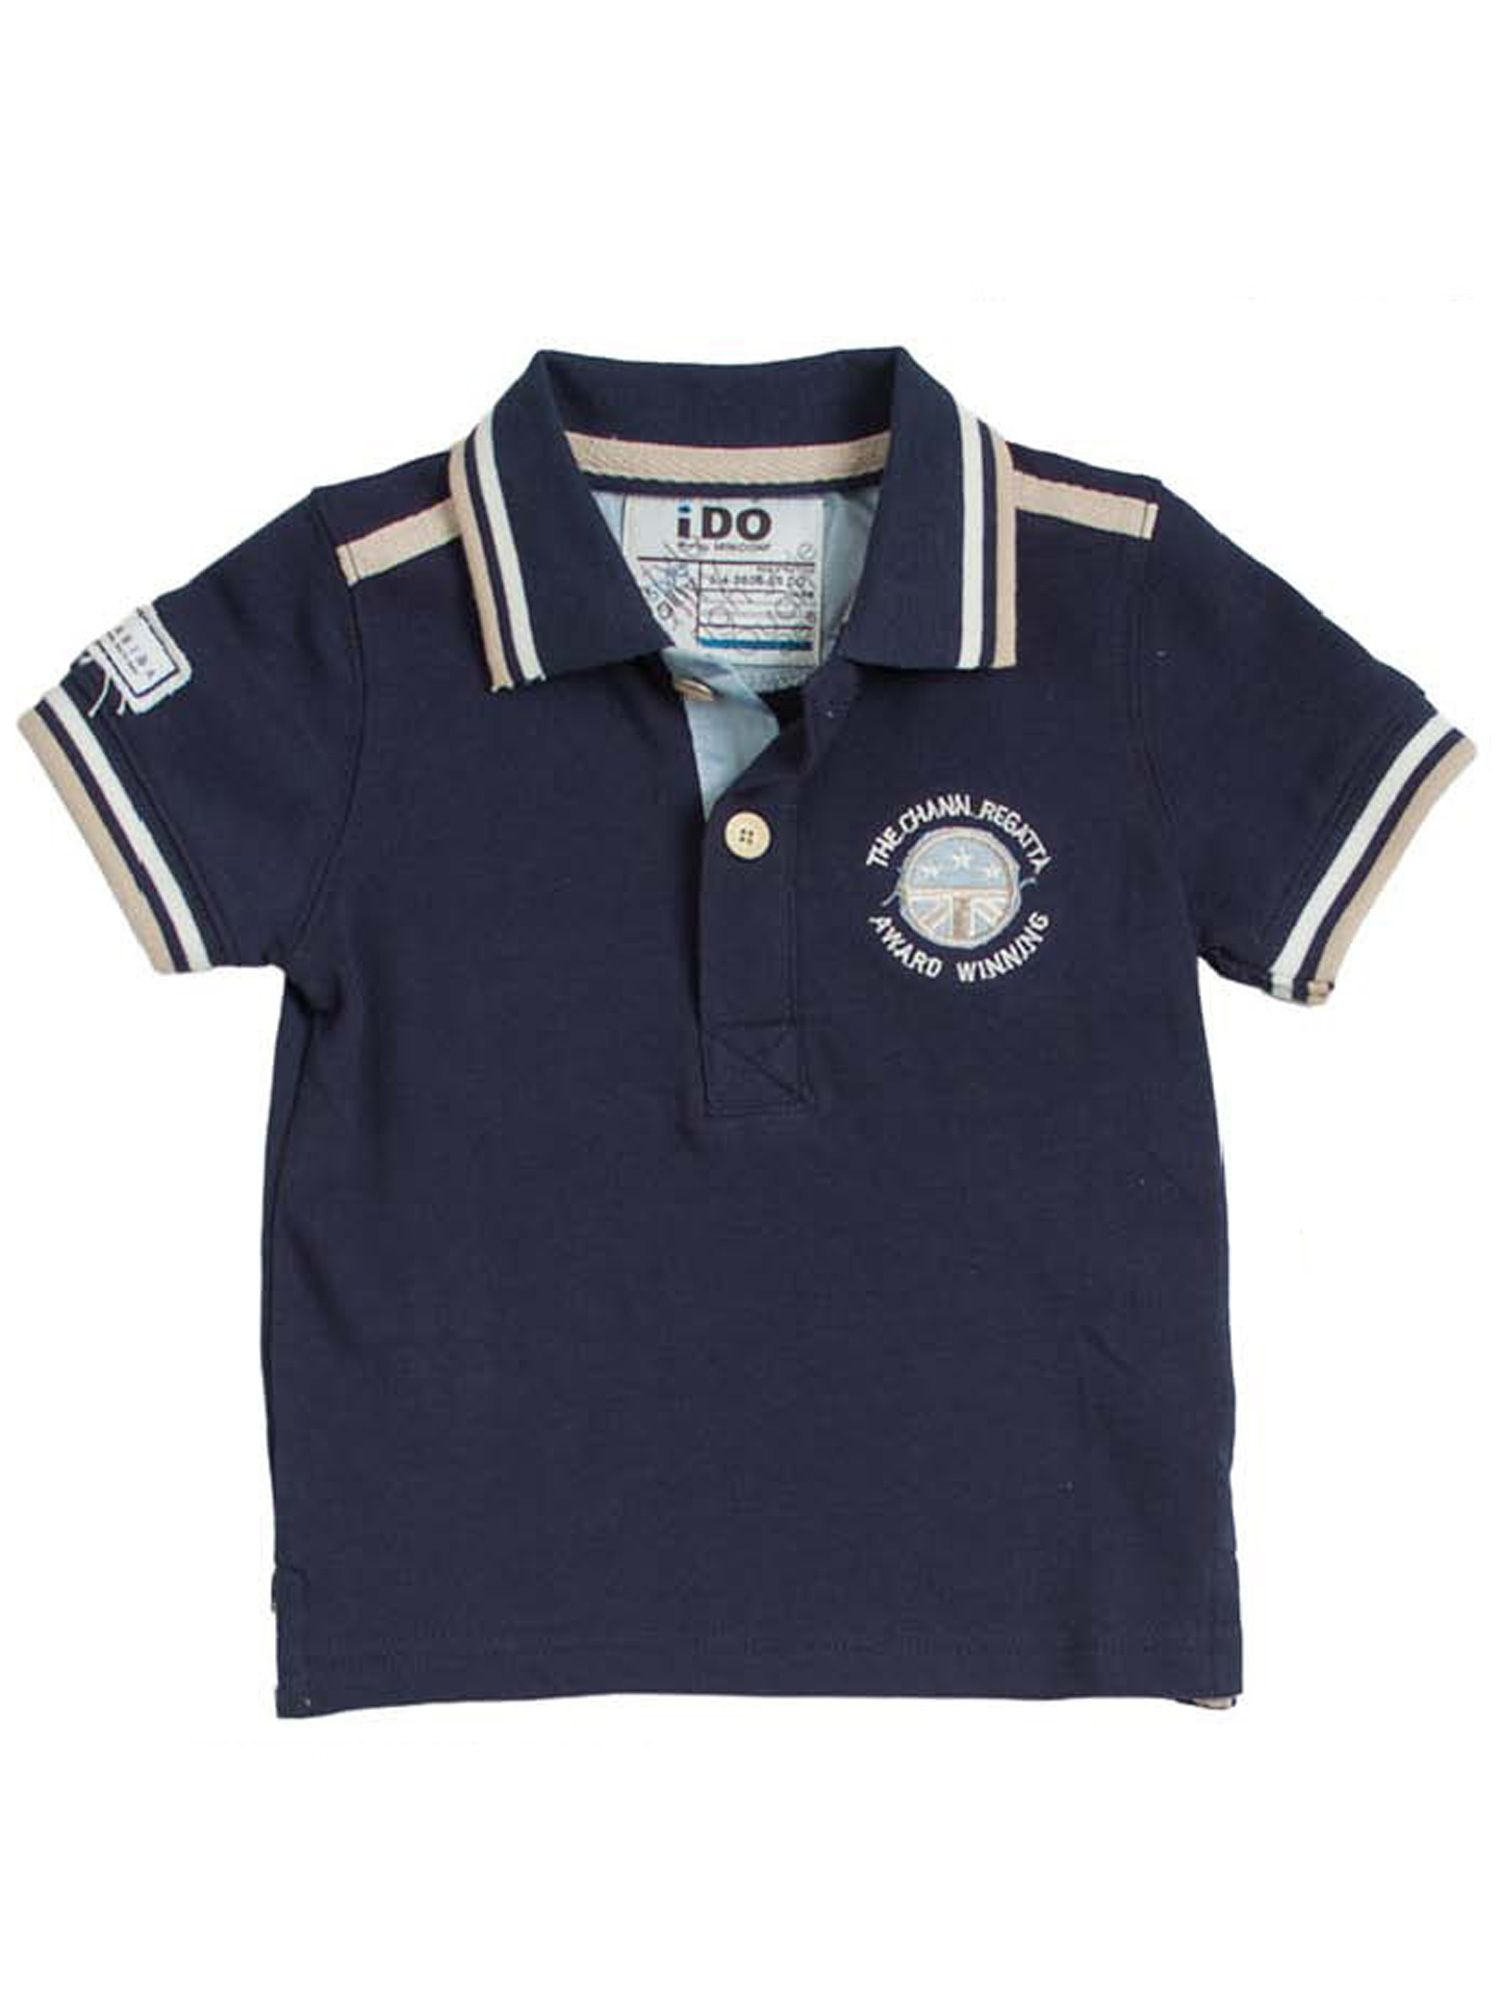 Boys front and back printed polo shirt